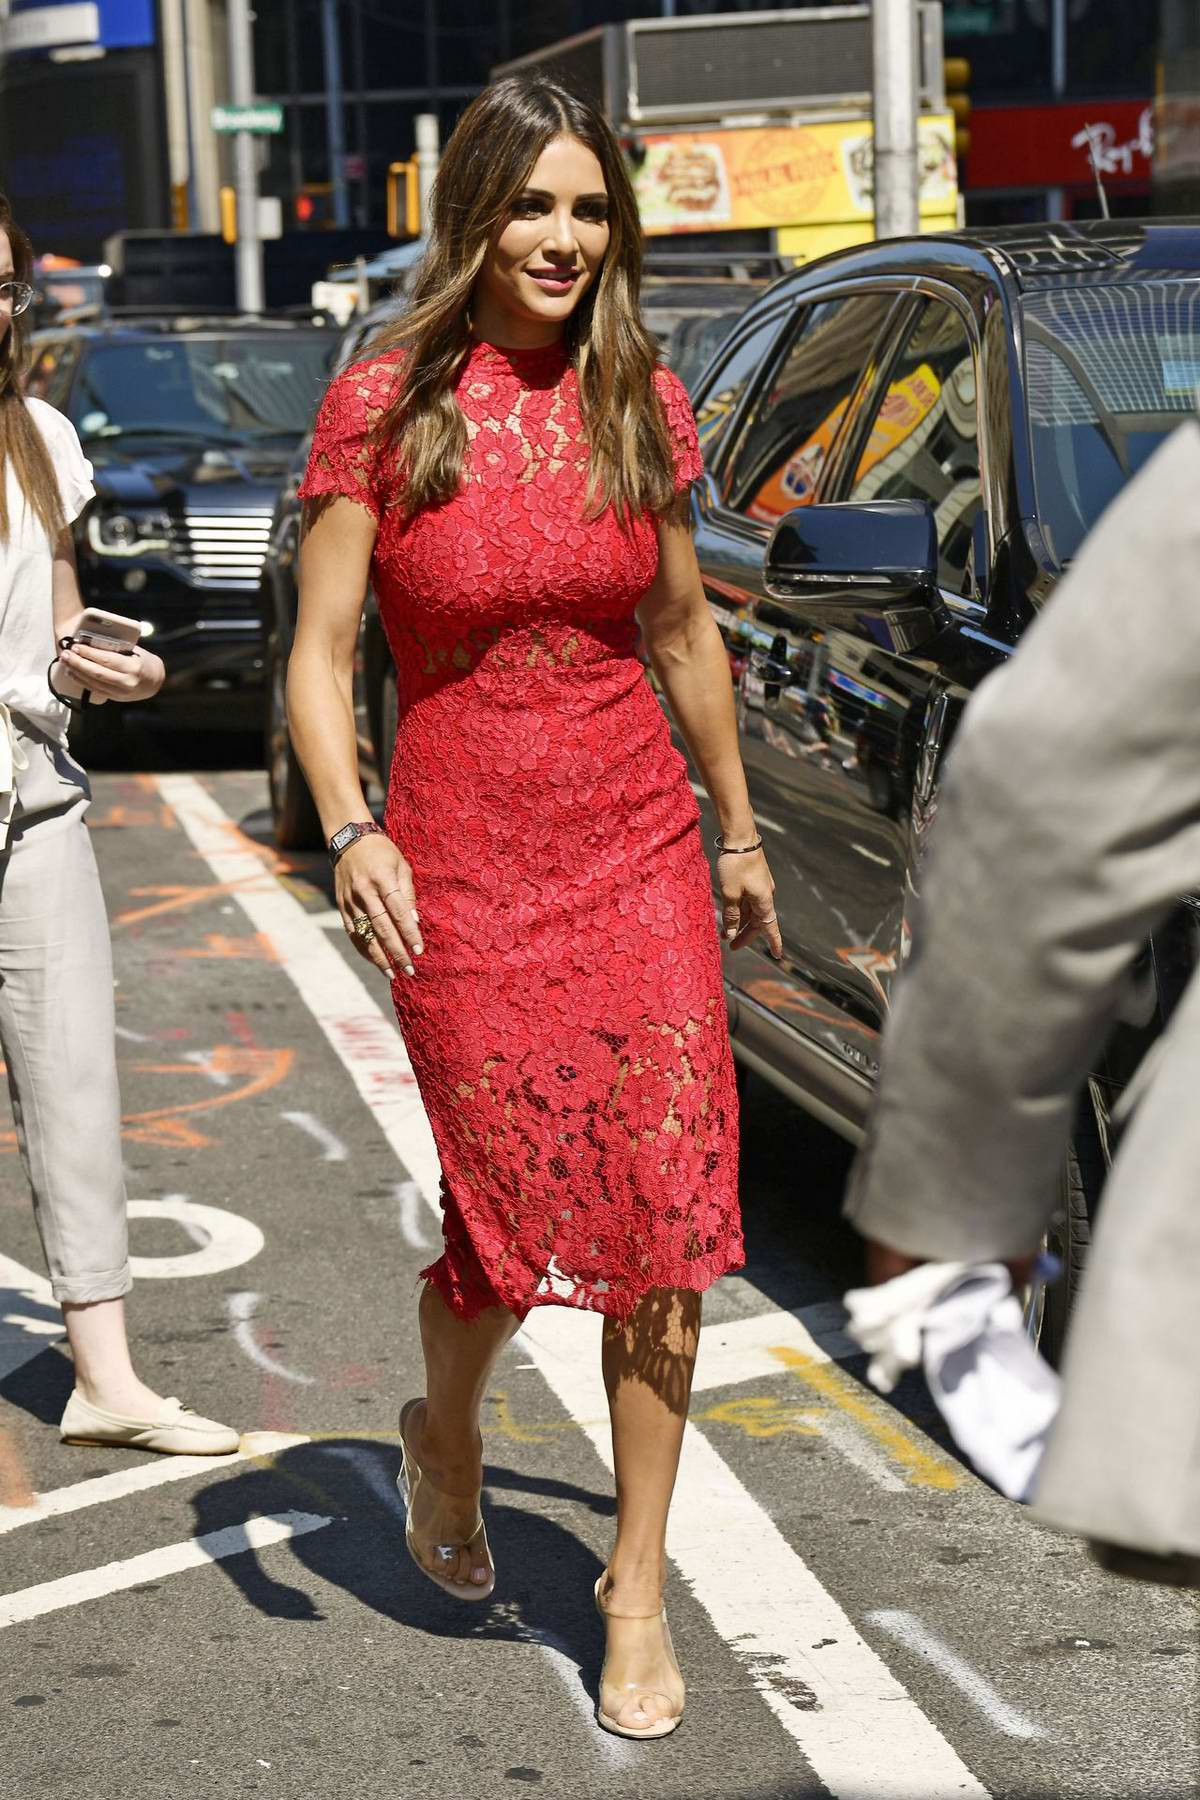 Andi Dorfman looks lovely in a red dress white out in New York City